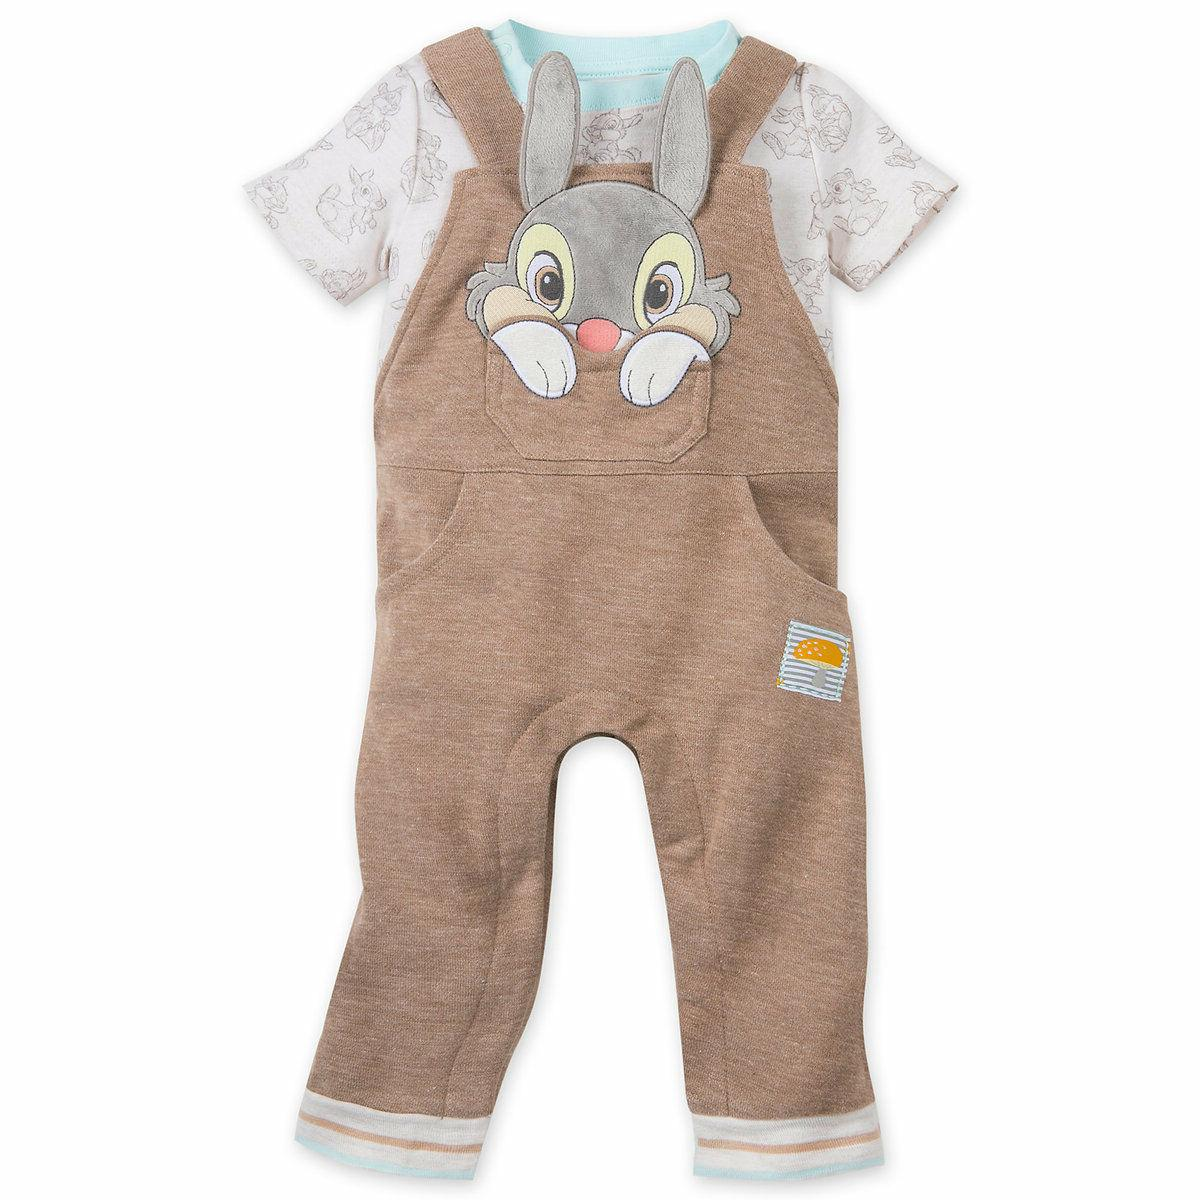 store thumper overalls and bodysuit set 3